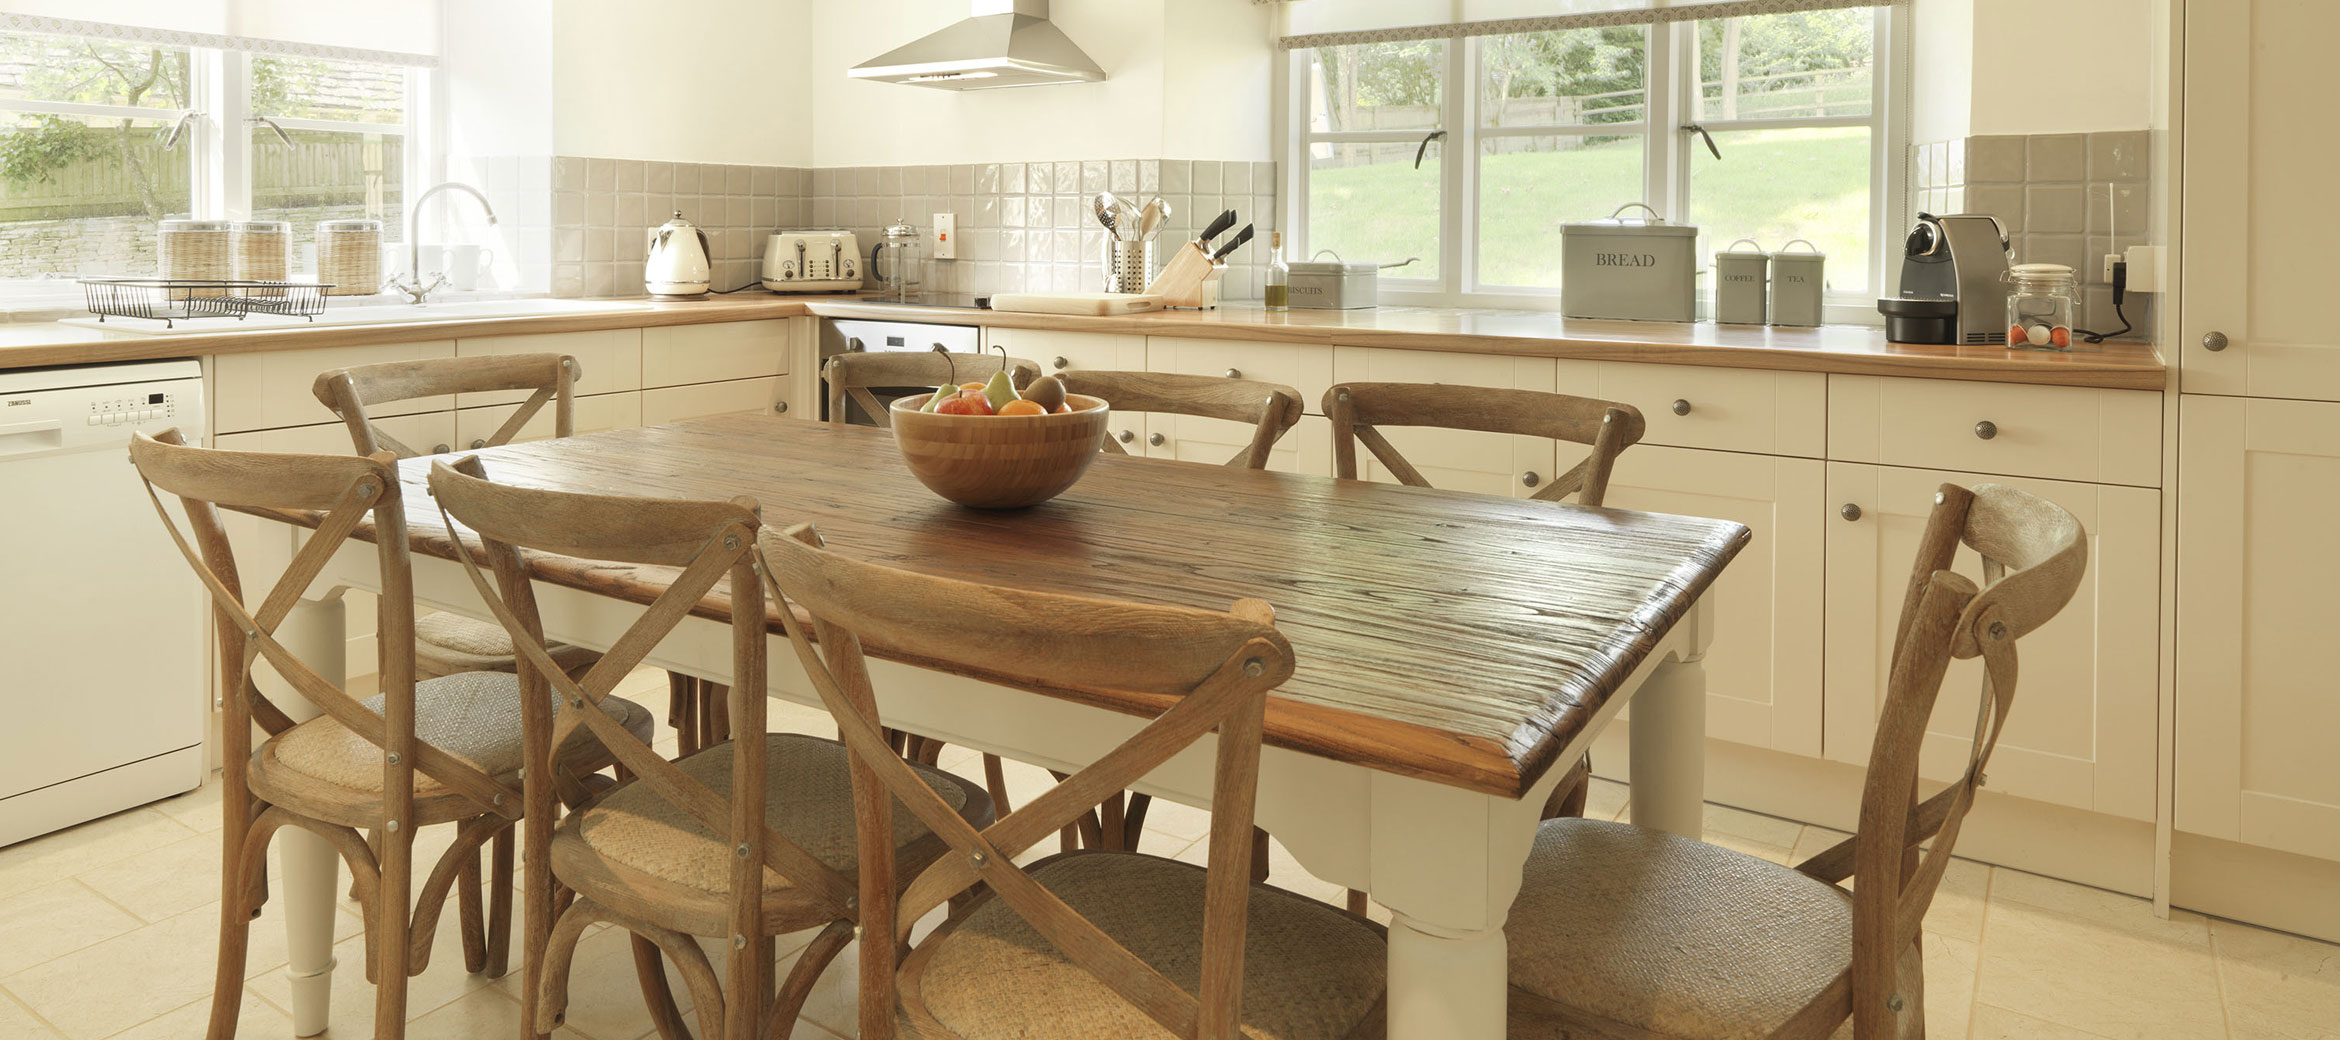 home-farm-cottage-kitchen-breakfast